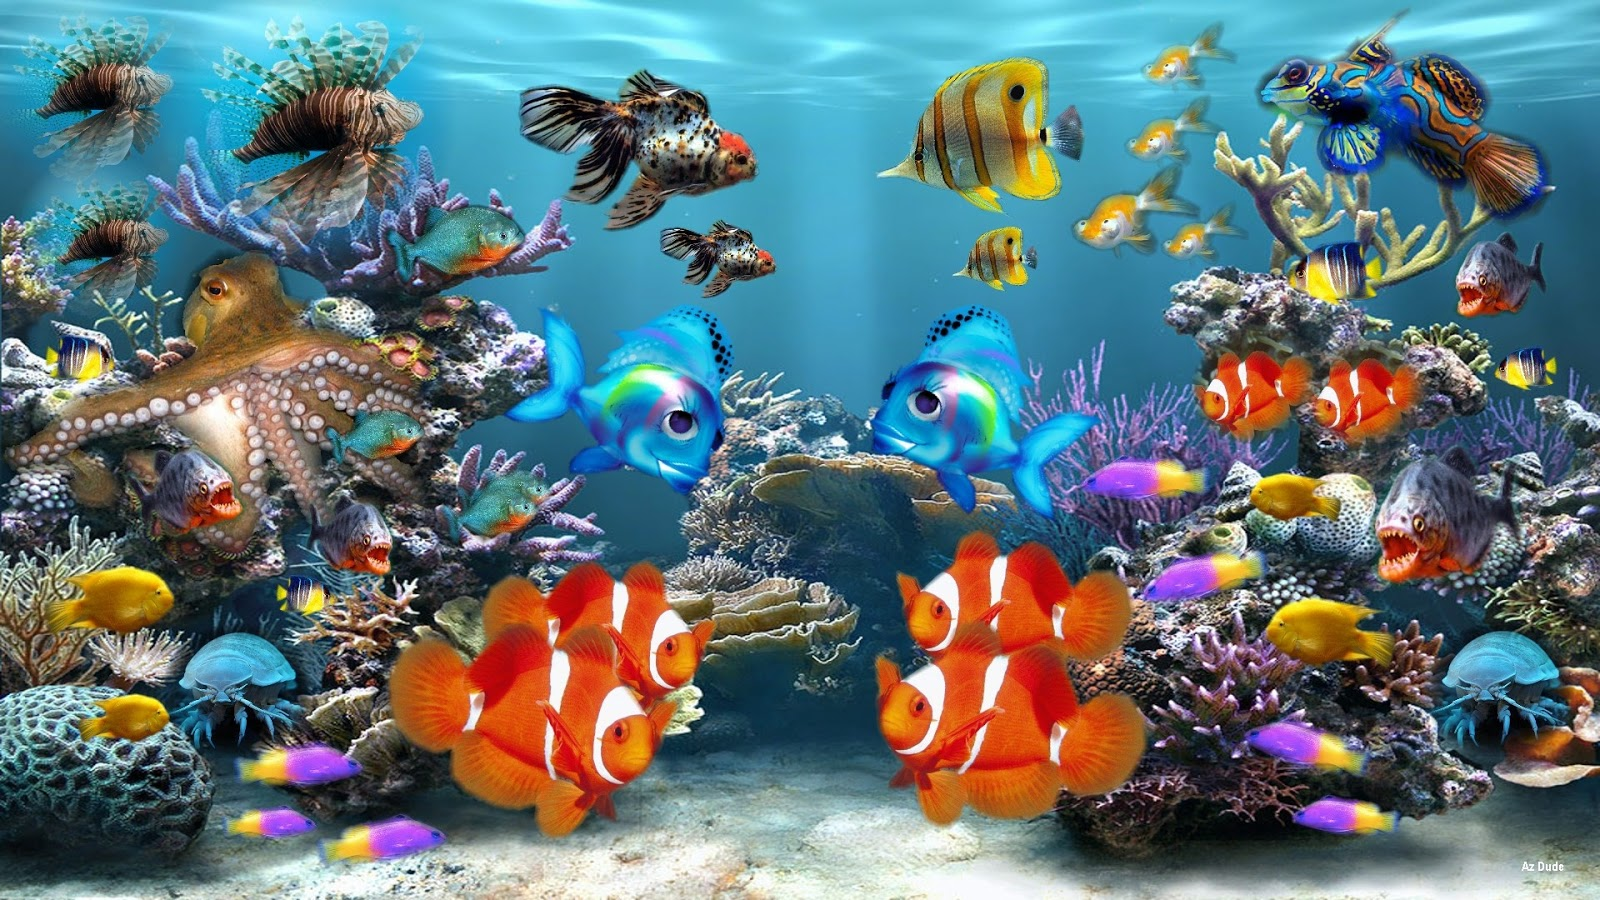 Free Animated Fish Tank Screensavers for Windows 8.1